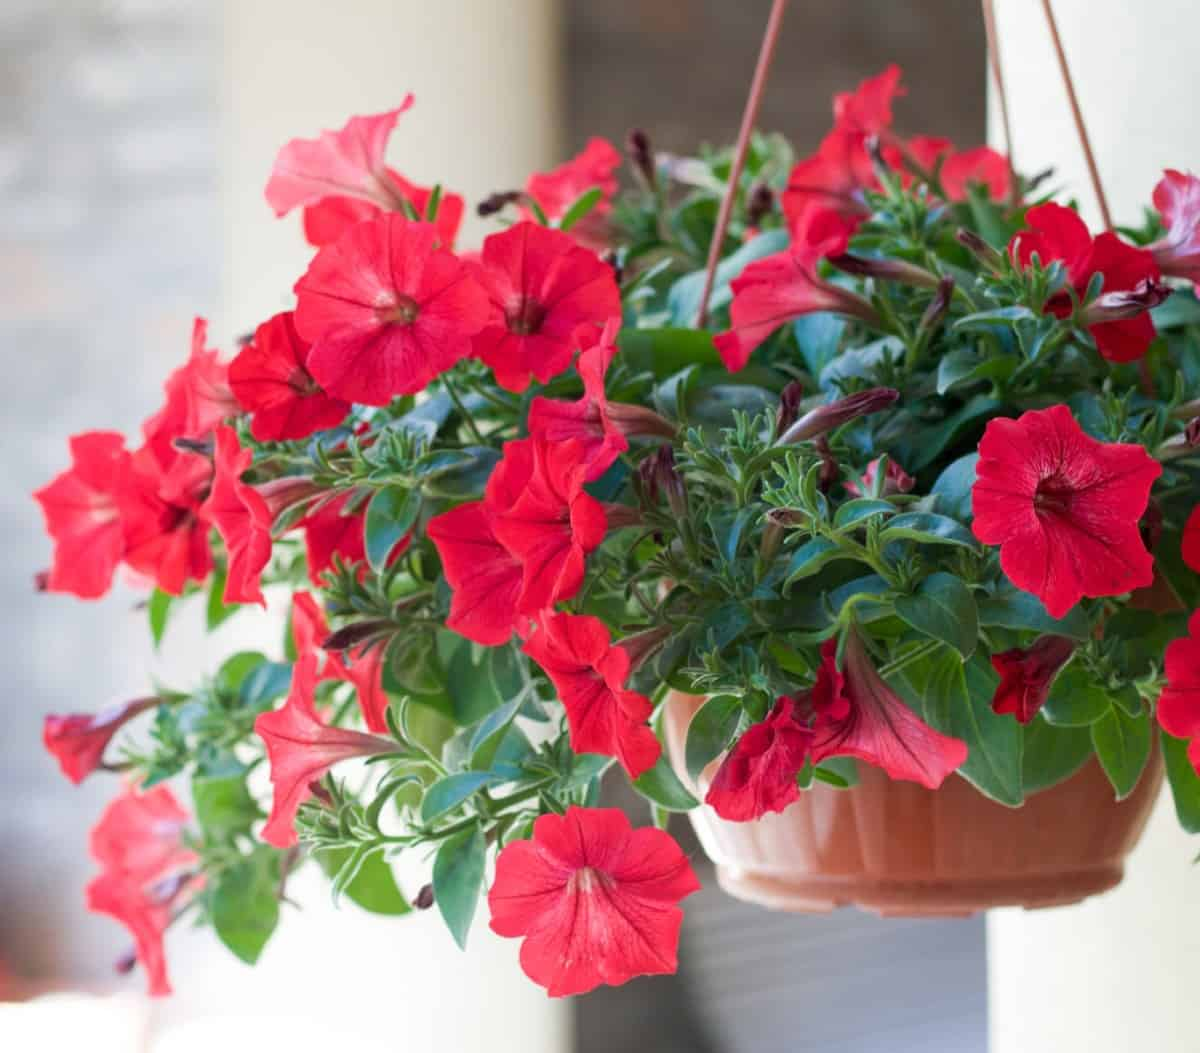 petunias have bright colors and a delightful scent